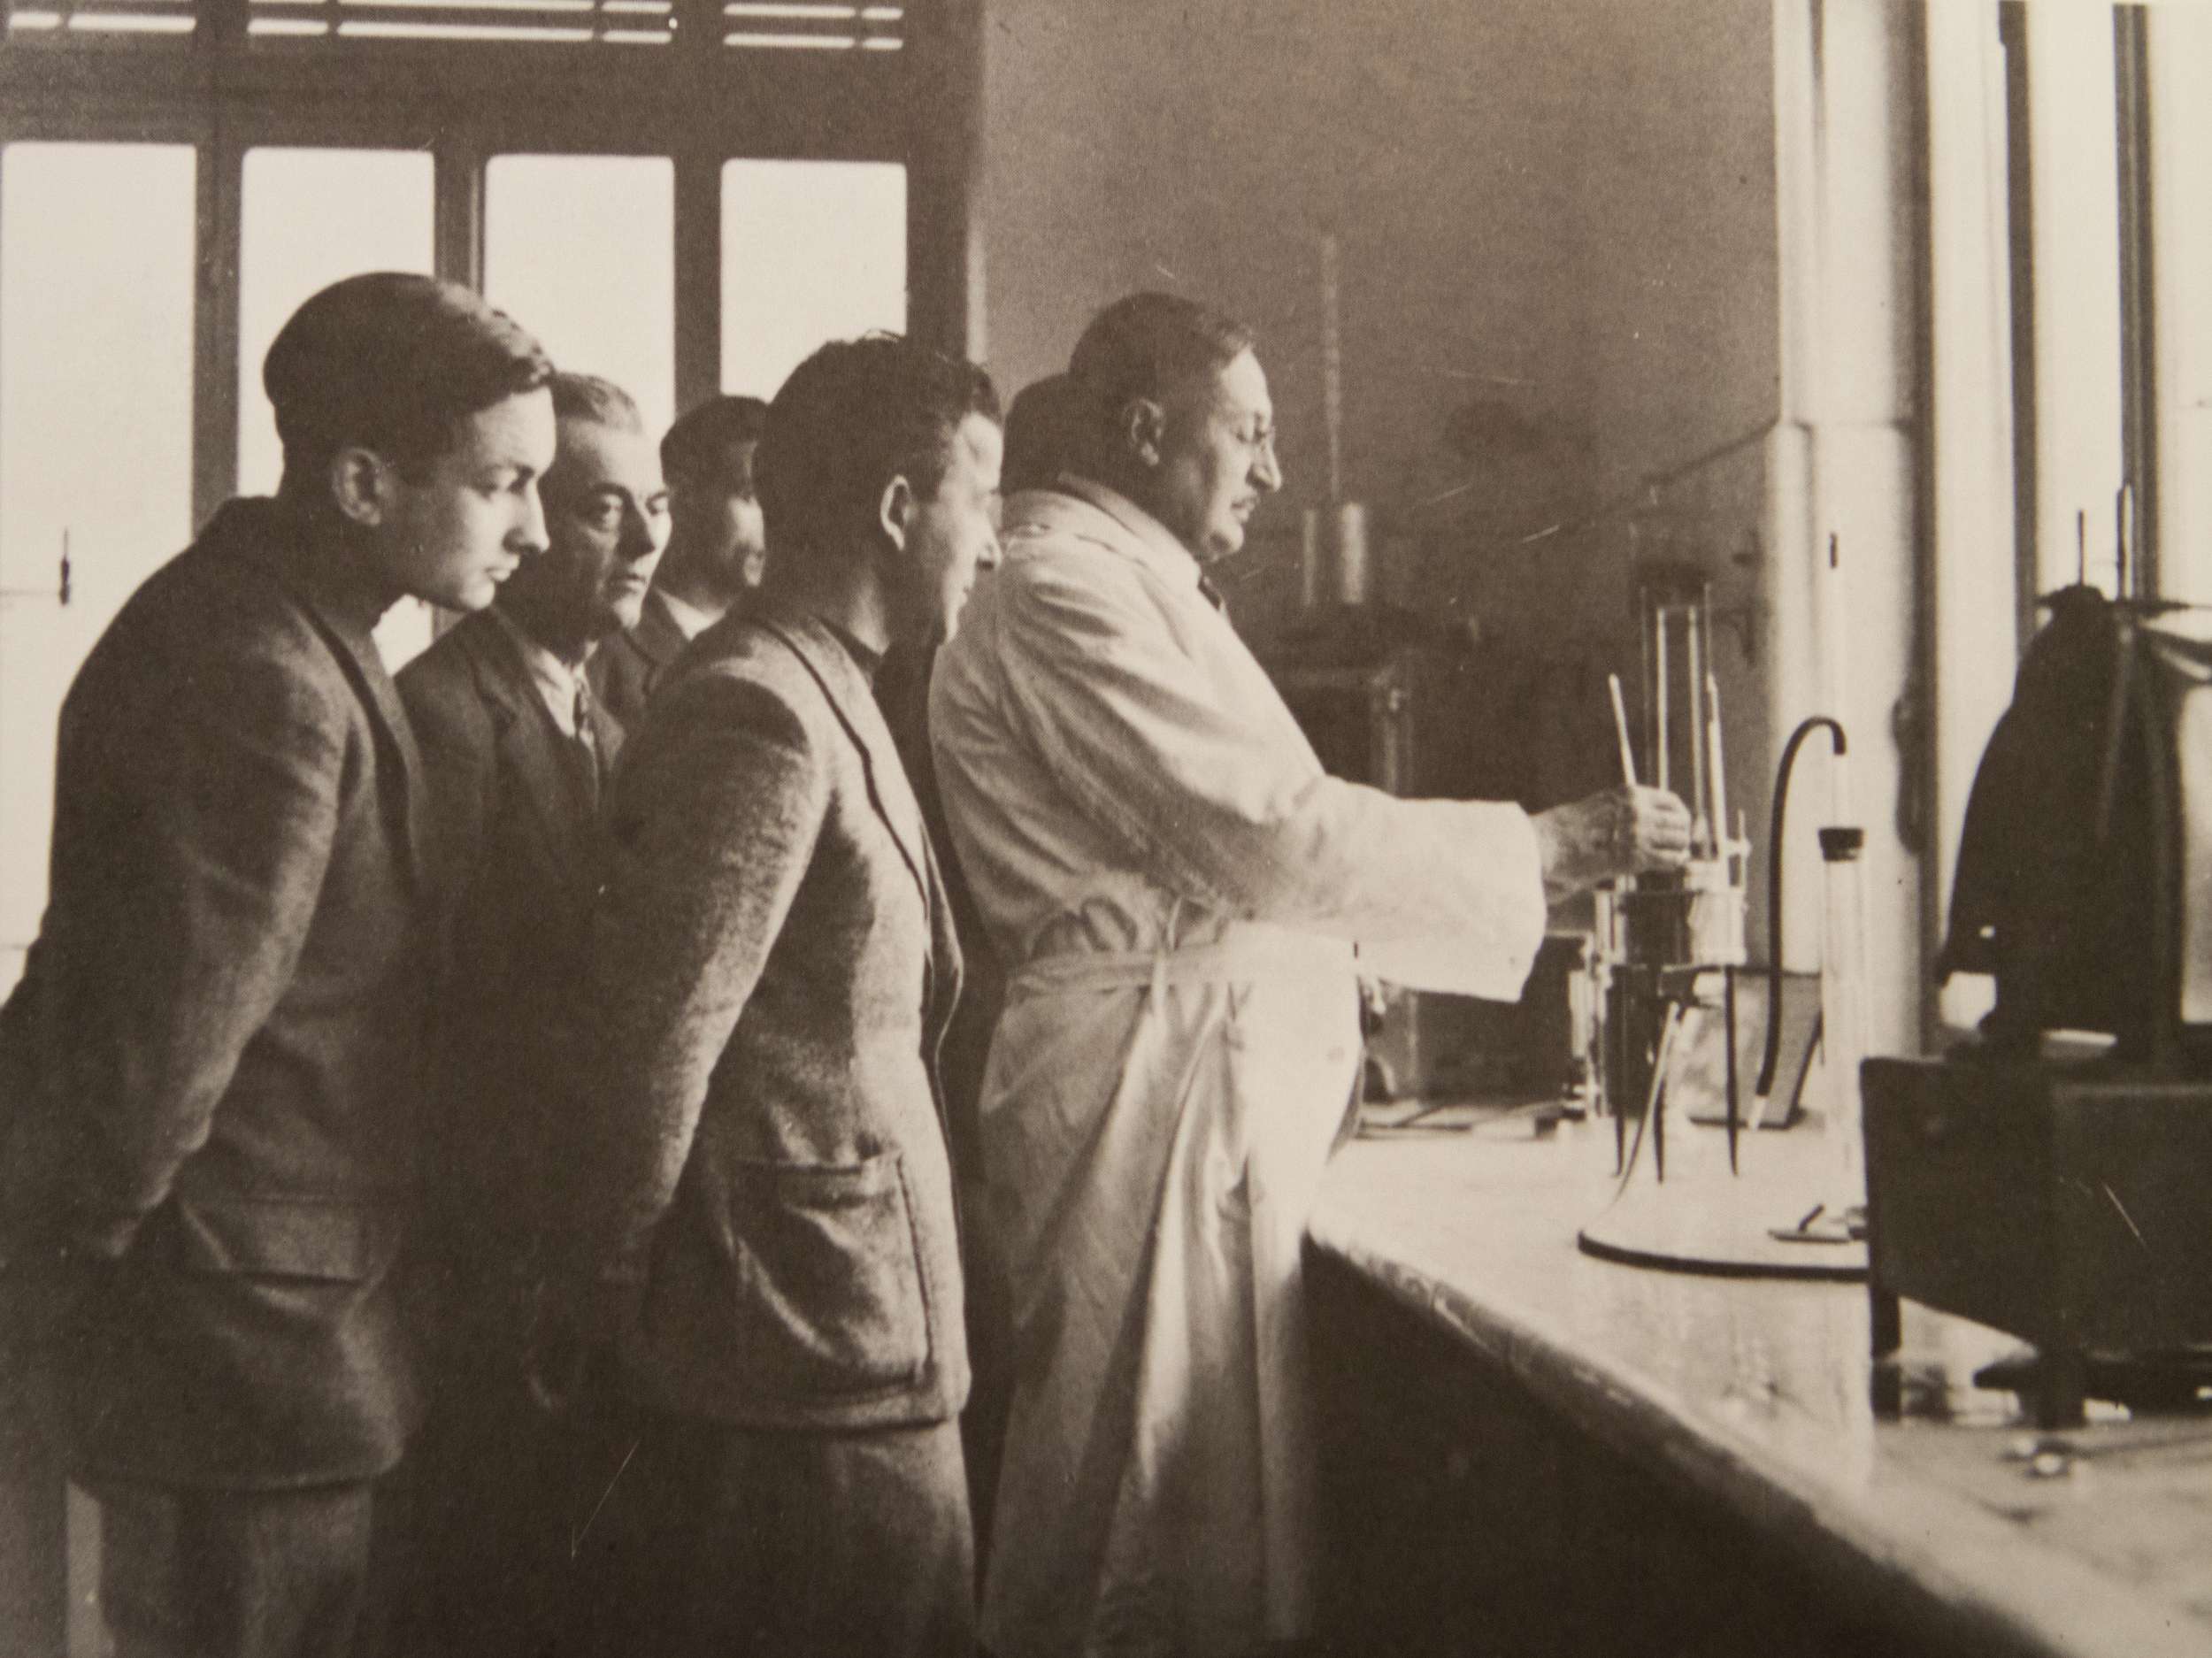 Demonstration by Paolo Cassinis in 1940